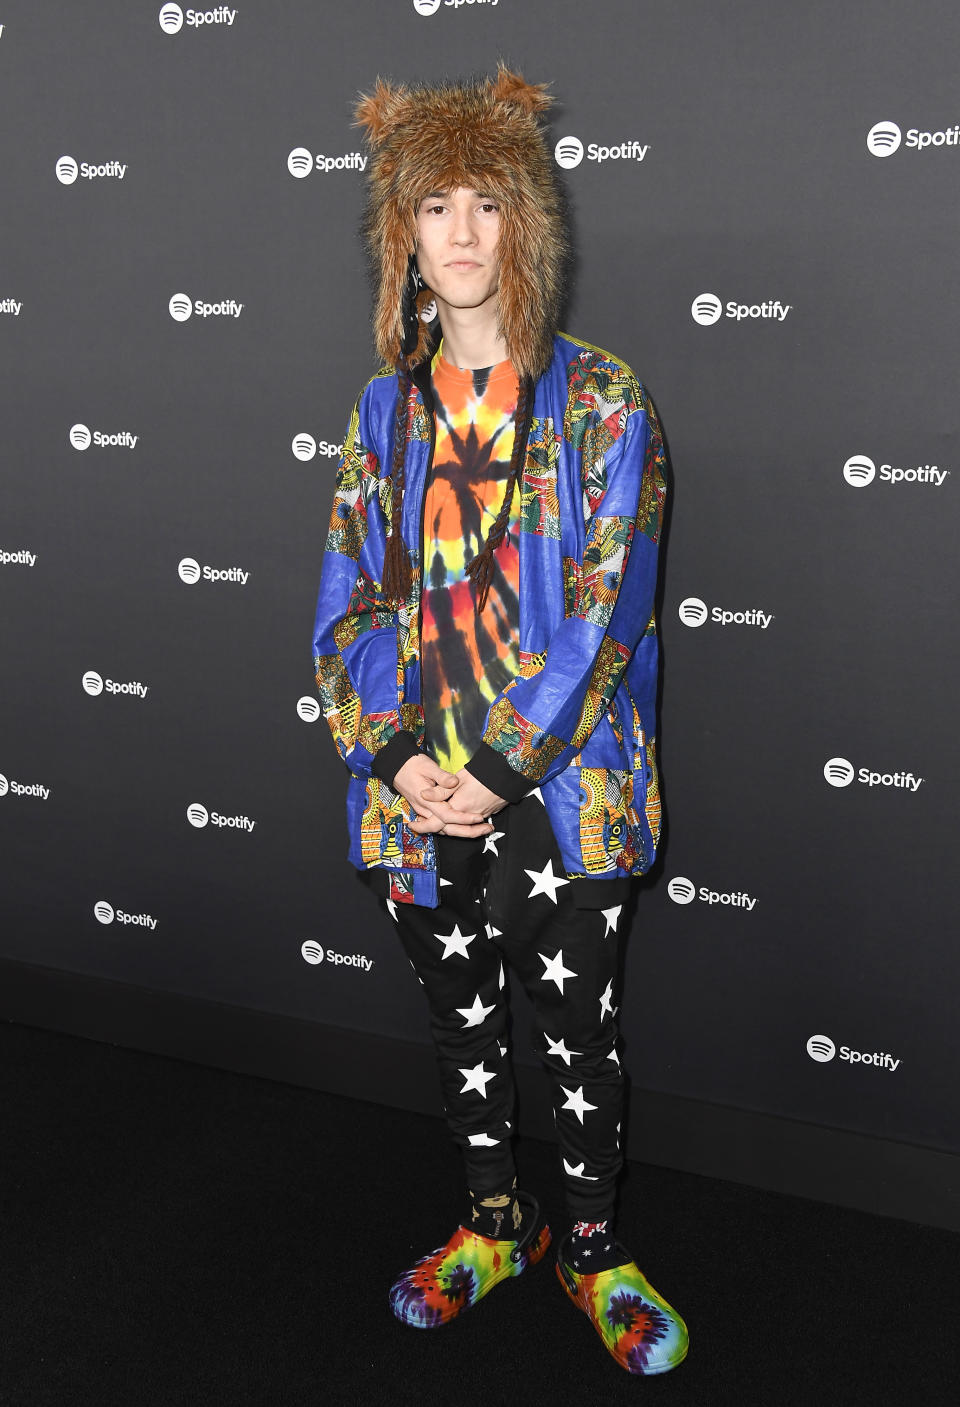 LOS ANGELES, CALIFORNIA - JANUARY 23: Jacob Collier attends Spotify Hosts